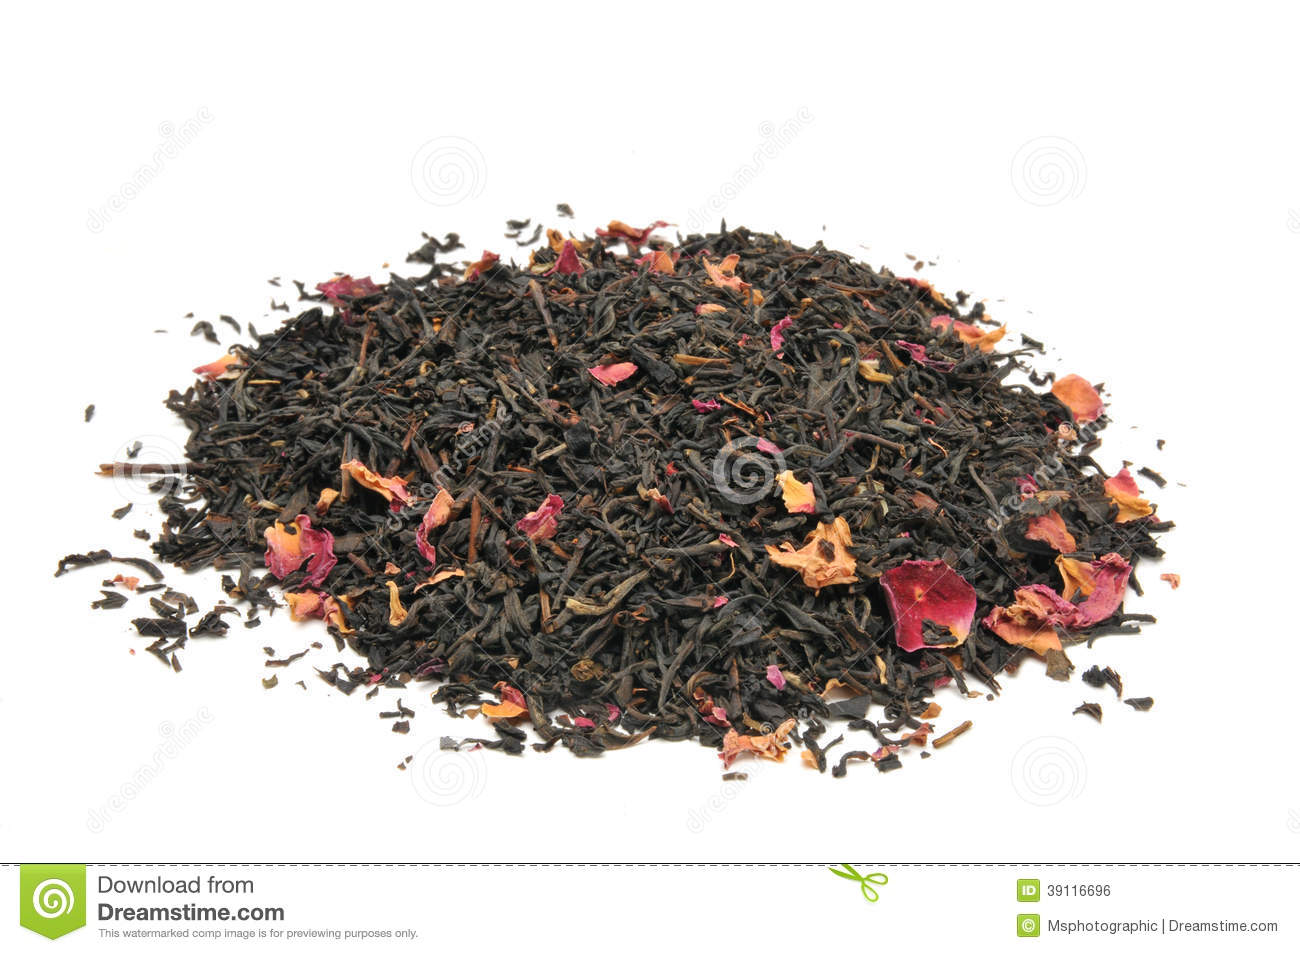 Rose infused black tea stock photo  Image of ingredient